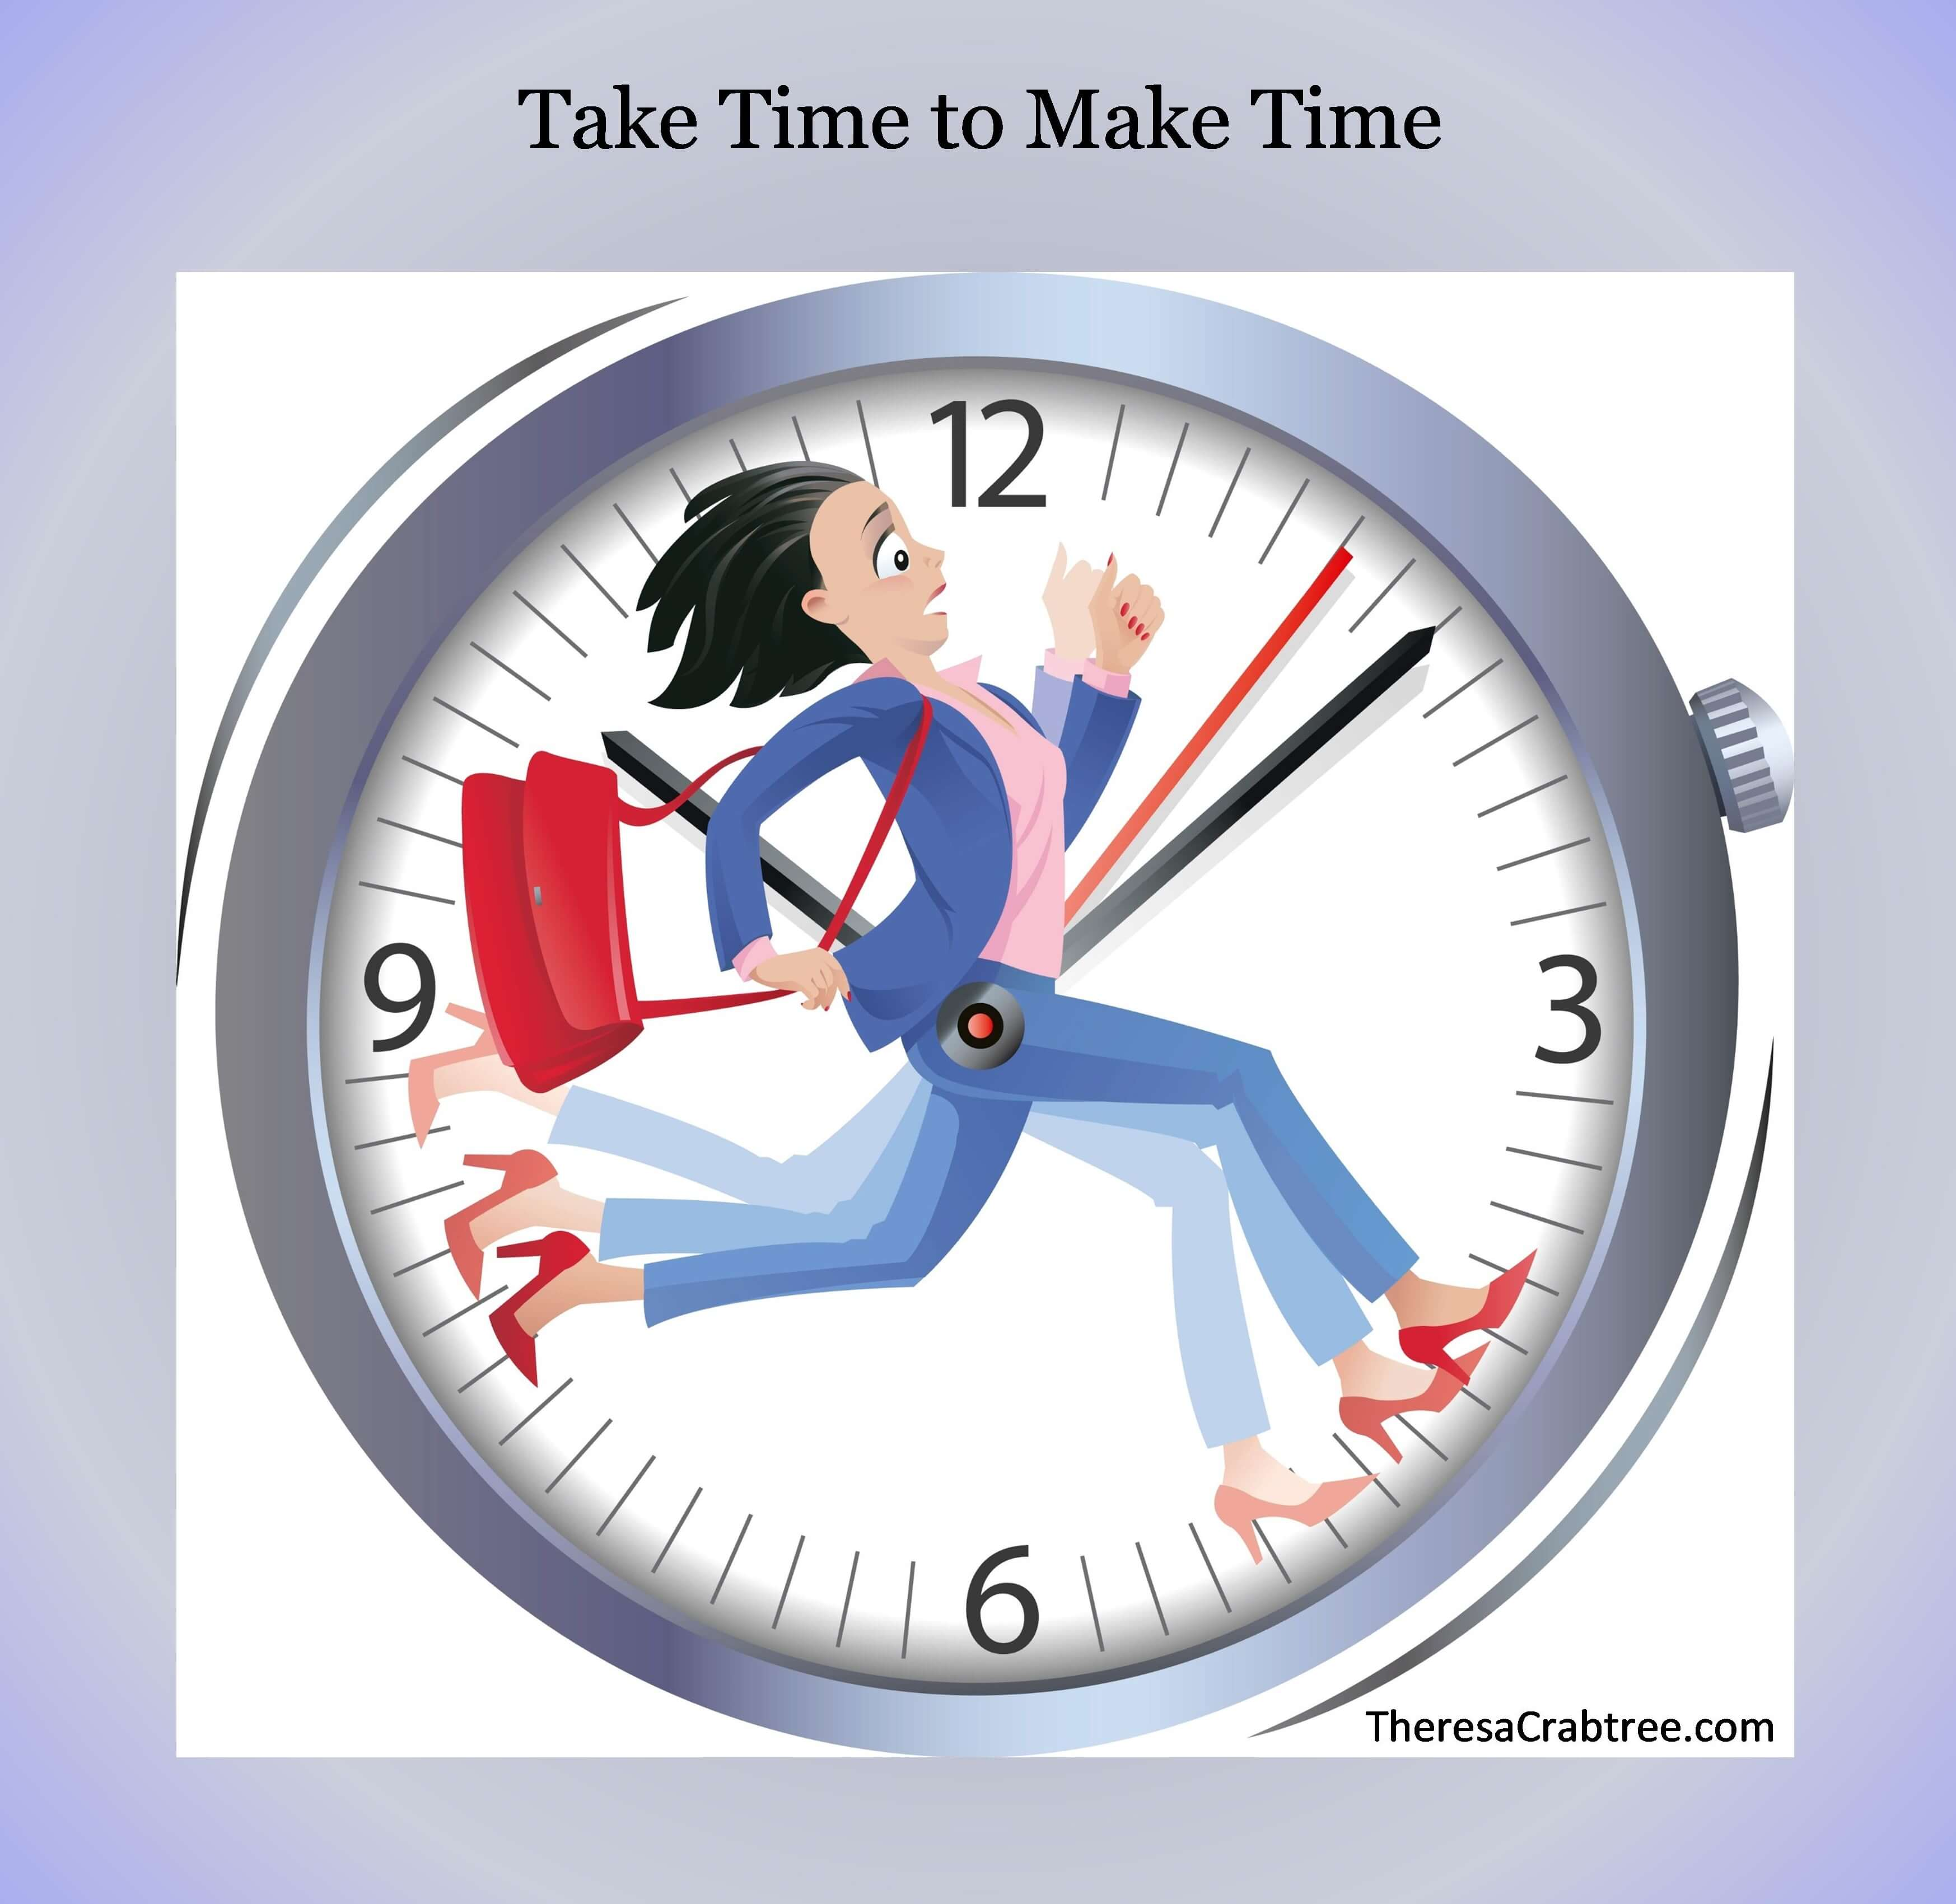 Soul Connection 234 ~ Take Time to Make Time